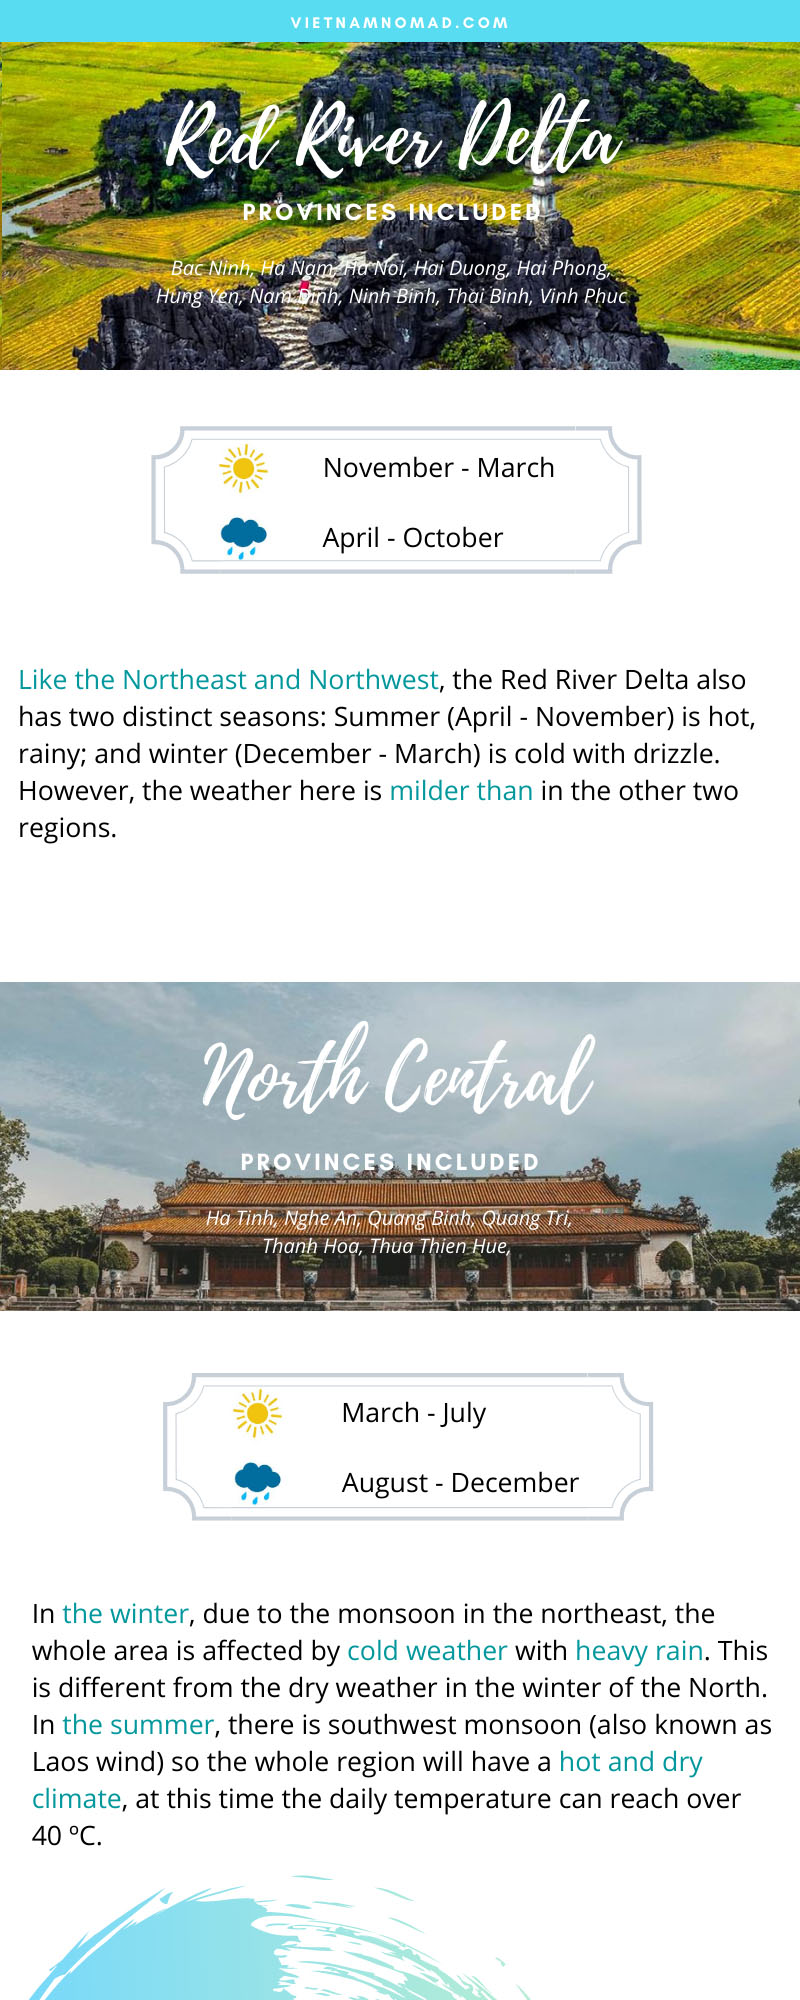 Vietnam weather infographic - The climate in the Red River Delta and North Central